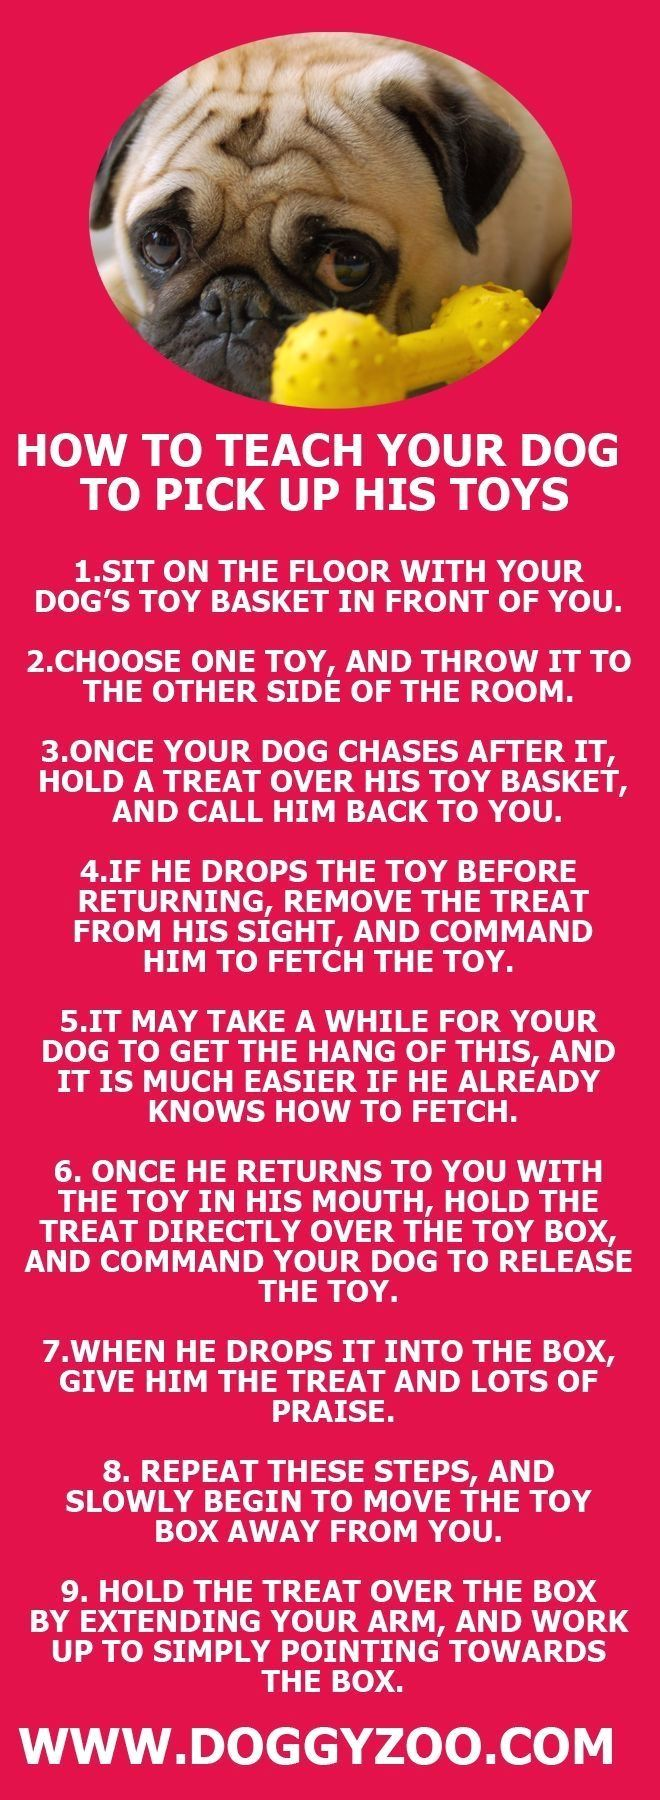 172 Best Puppy Dog Tales Images On Pinterest Doggies Treats But Doesn39t Do It Justice Here39 S What Looks Like From The Bike Basic Training Click Picture For Various Care And Ideas